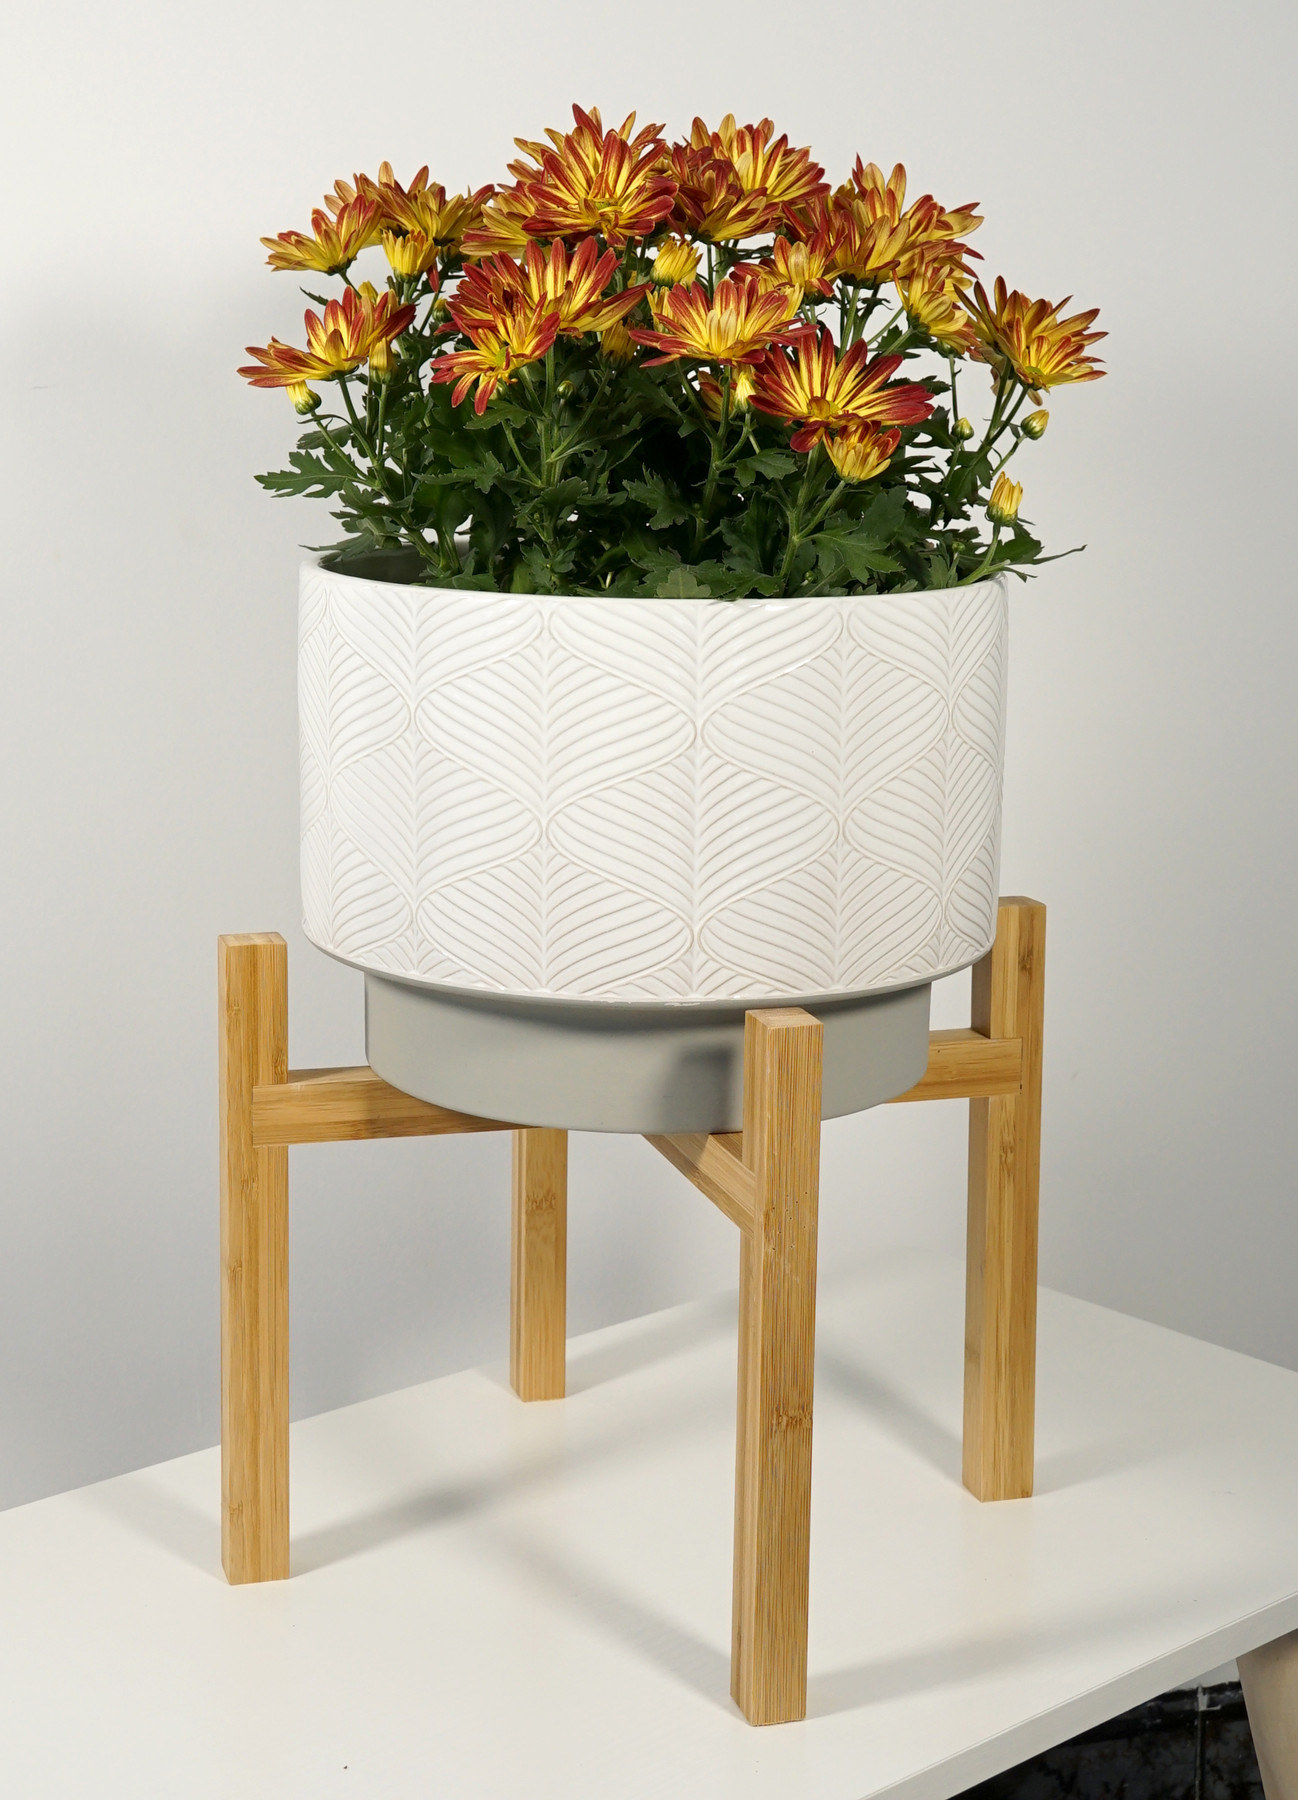 a ceramic planter with white and grey designs with a grey base on a wooden stand